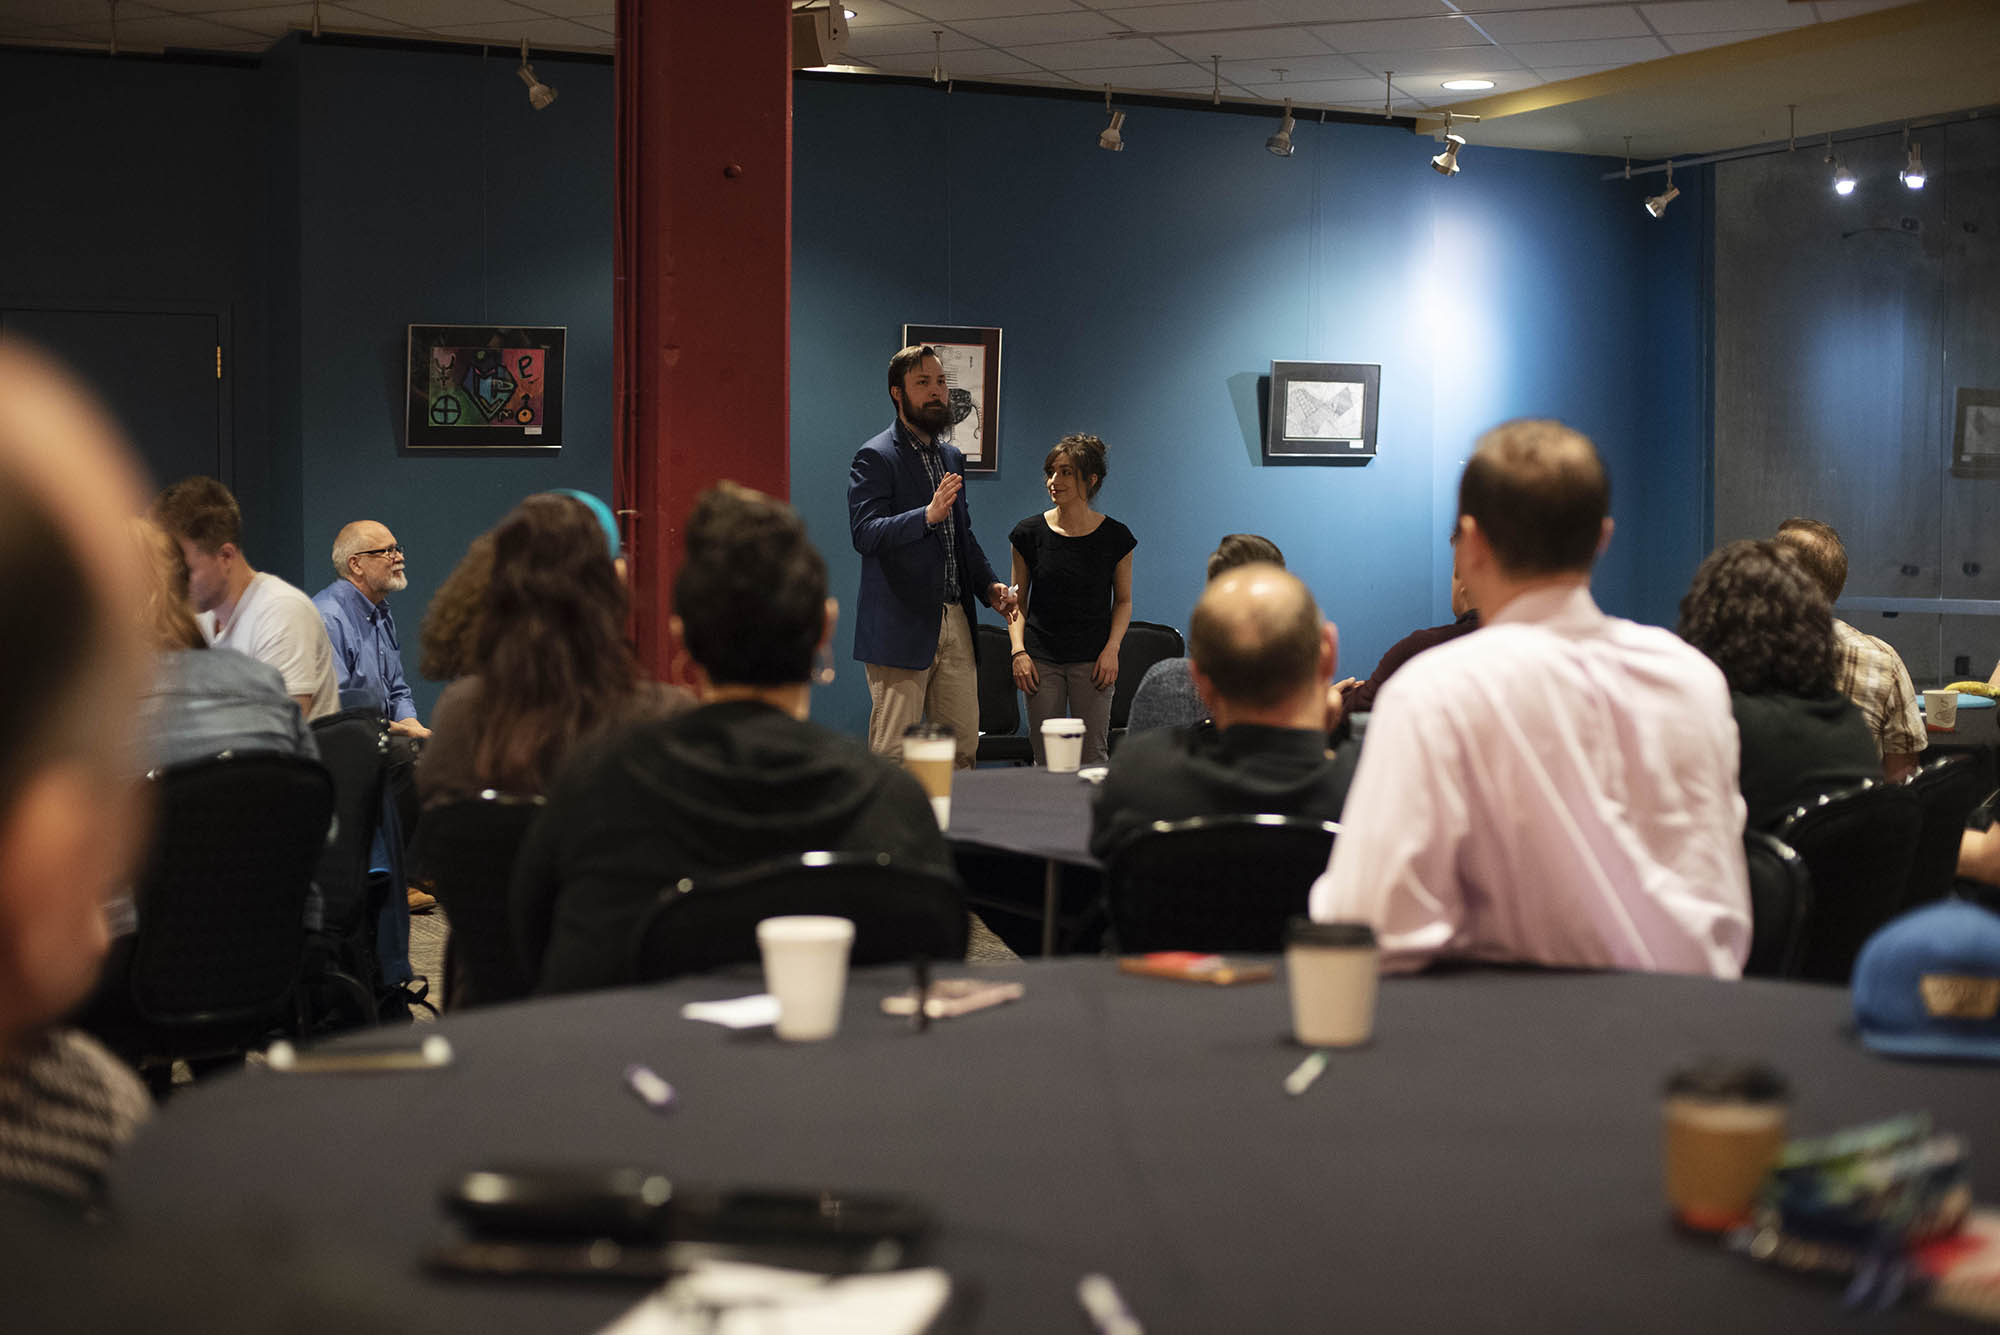 Conference goers meet in the Fenimore Gallery during TM3, Theatre Manager Third National Conference, at Proctors in Schenectady Thursday, May 3, 2018.